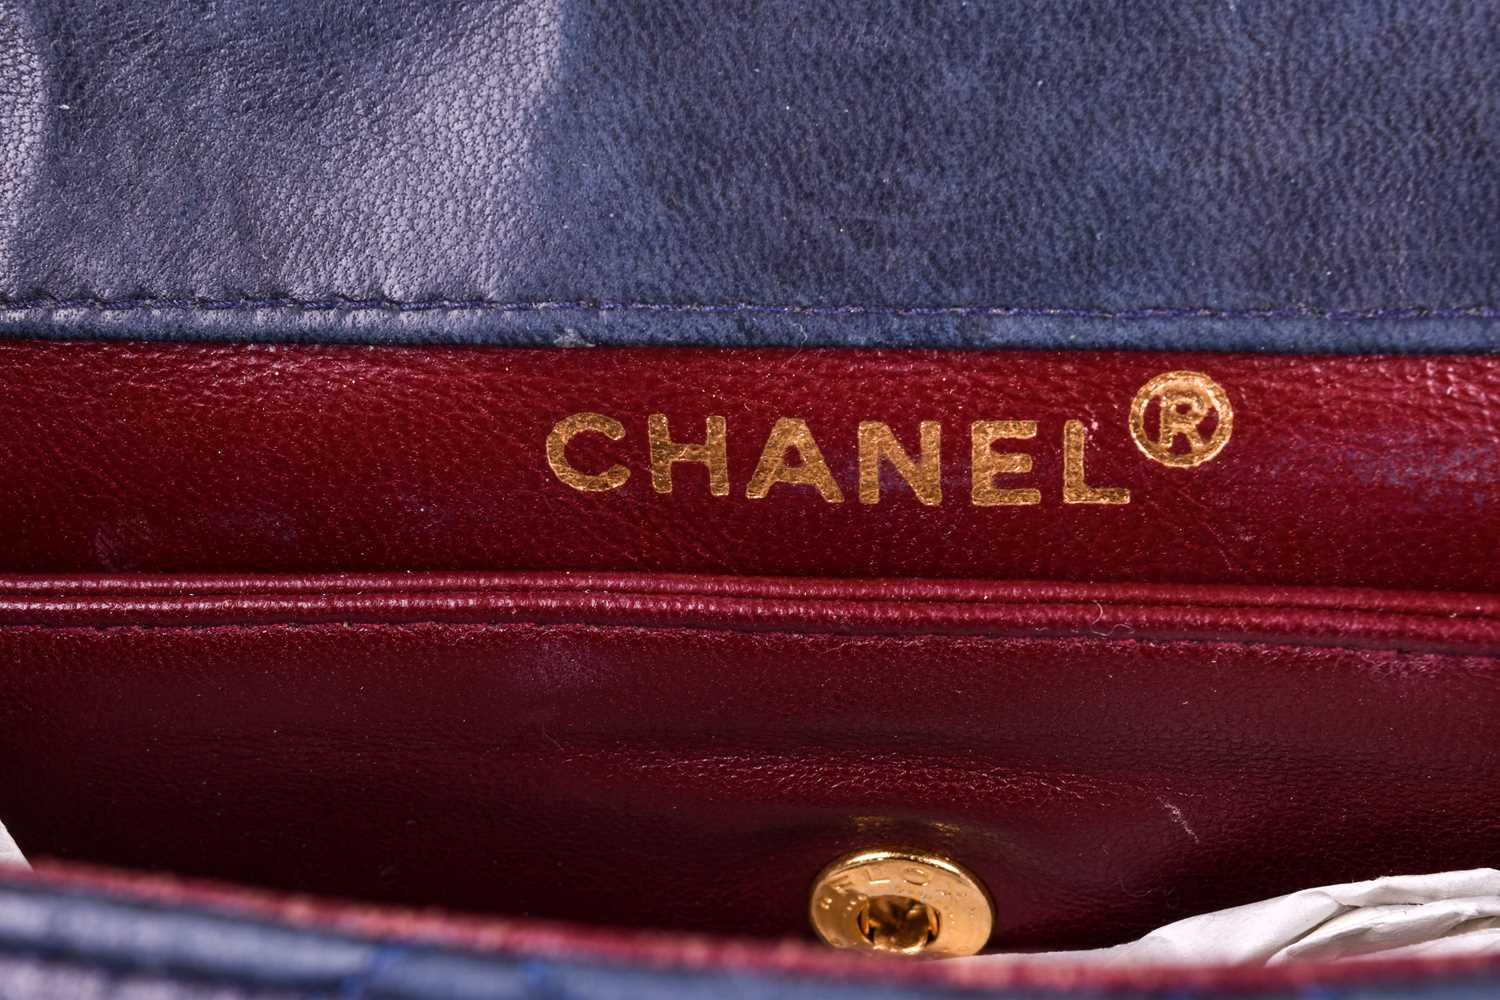 Chanel. A classic quilted leather handbag, of tapered square design, with gold tone CC logo clasp, - Image 6 of 26